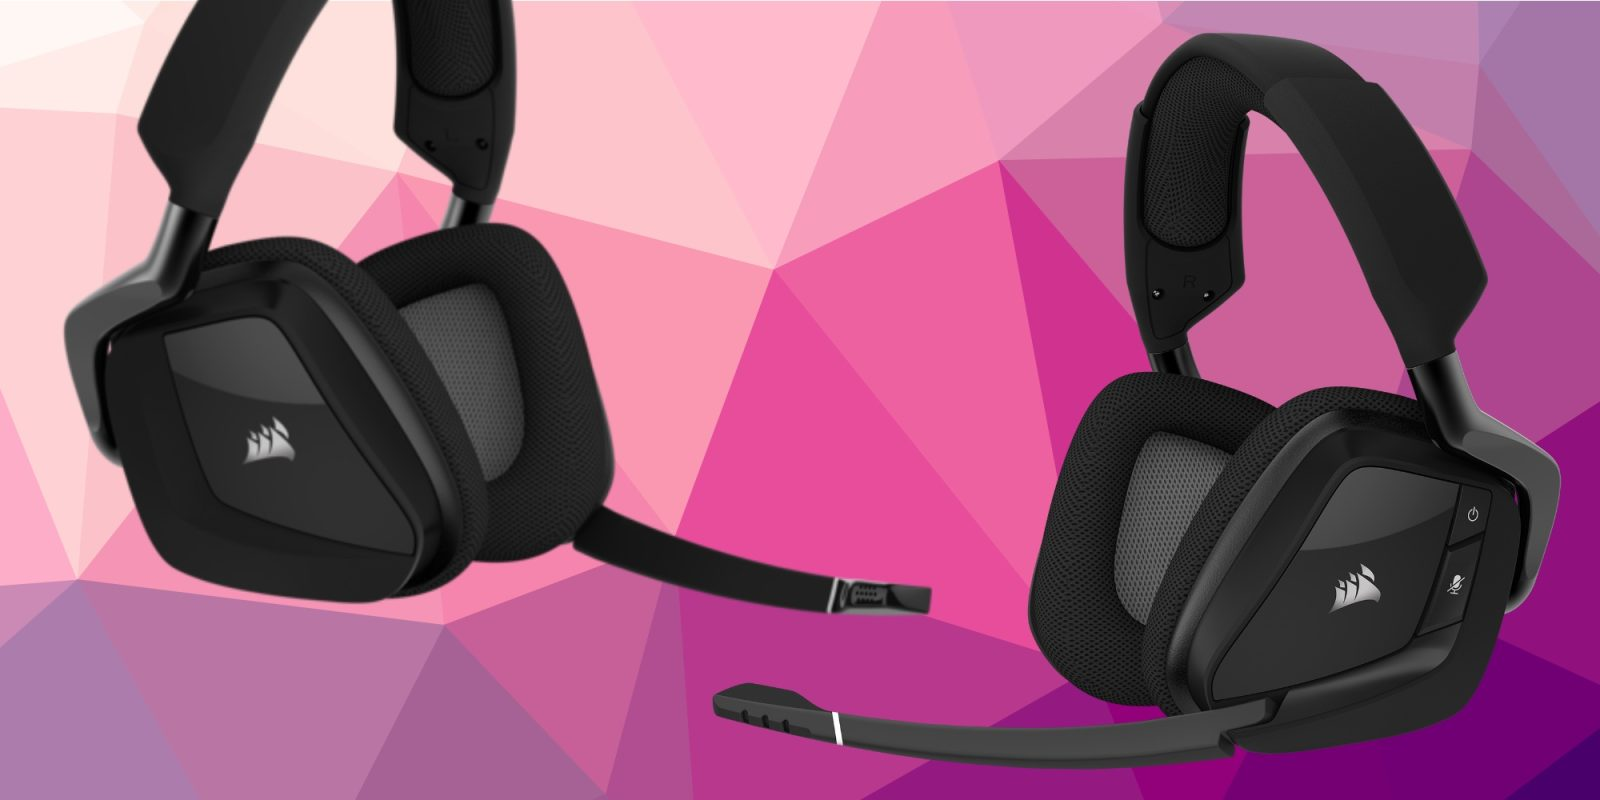 Level up your game with CORSAIR's VOID Pro RGB Headset at